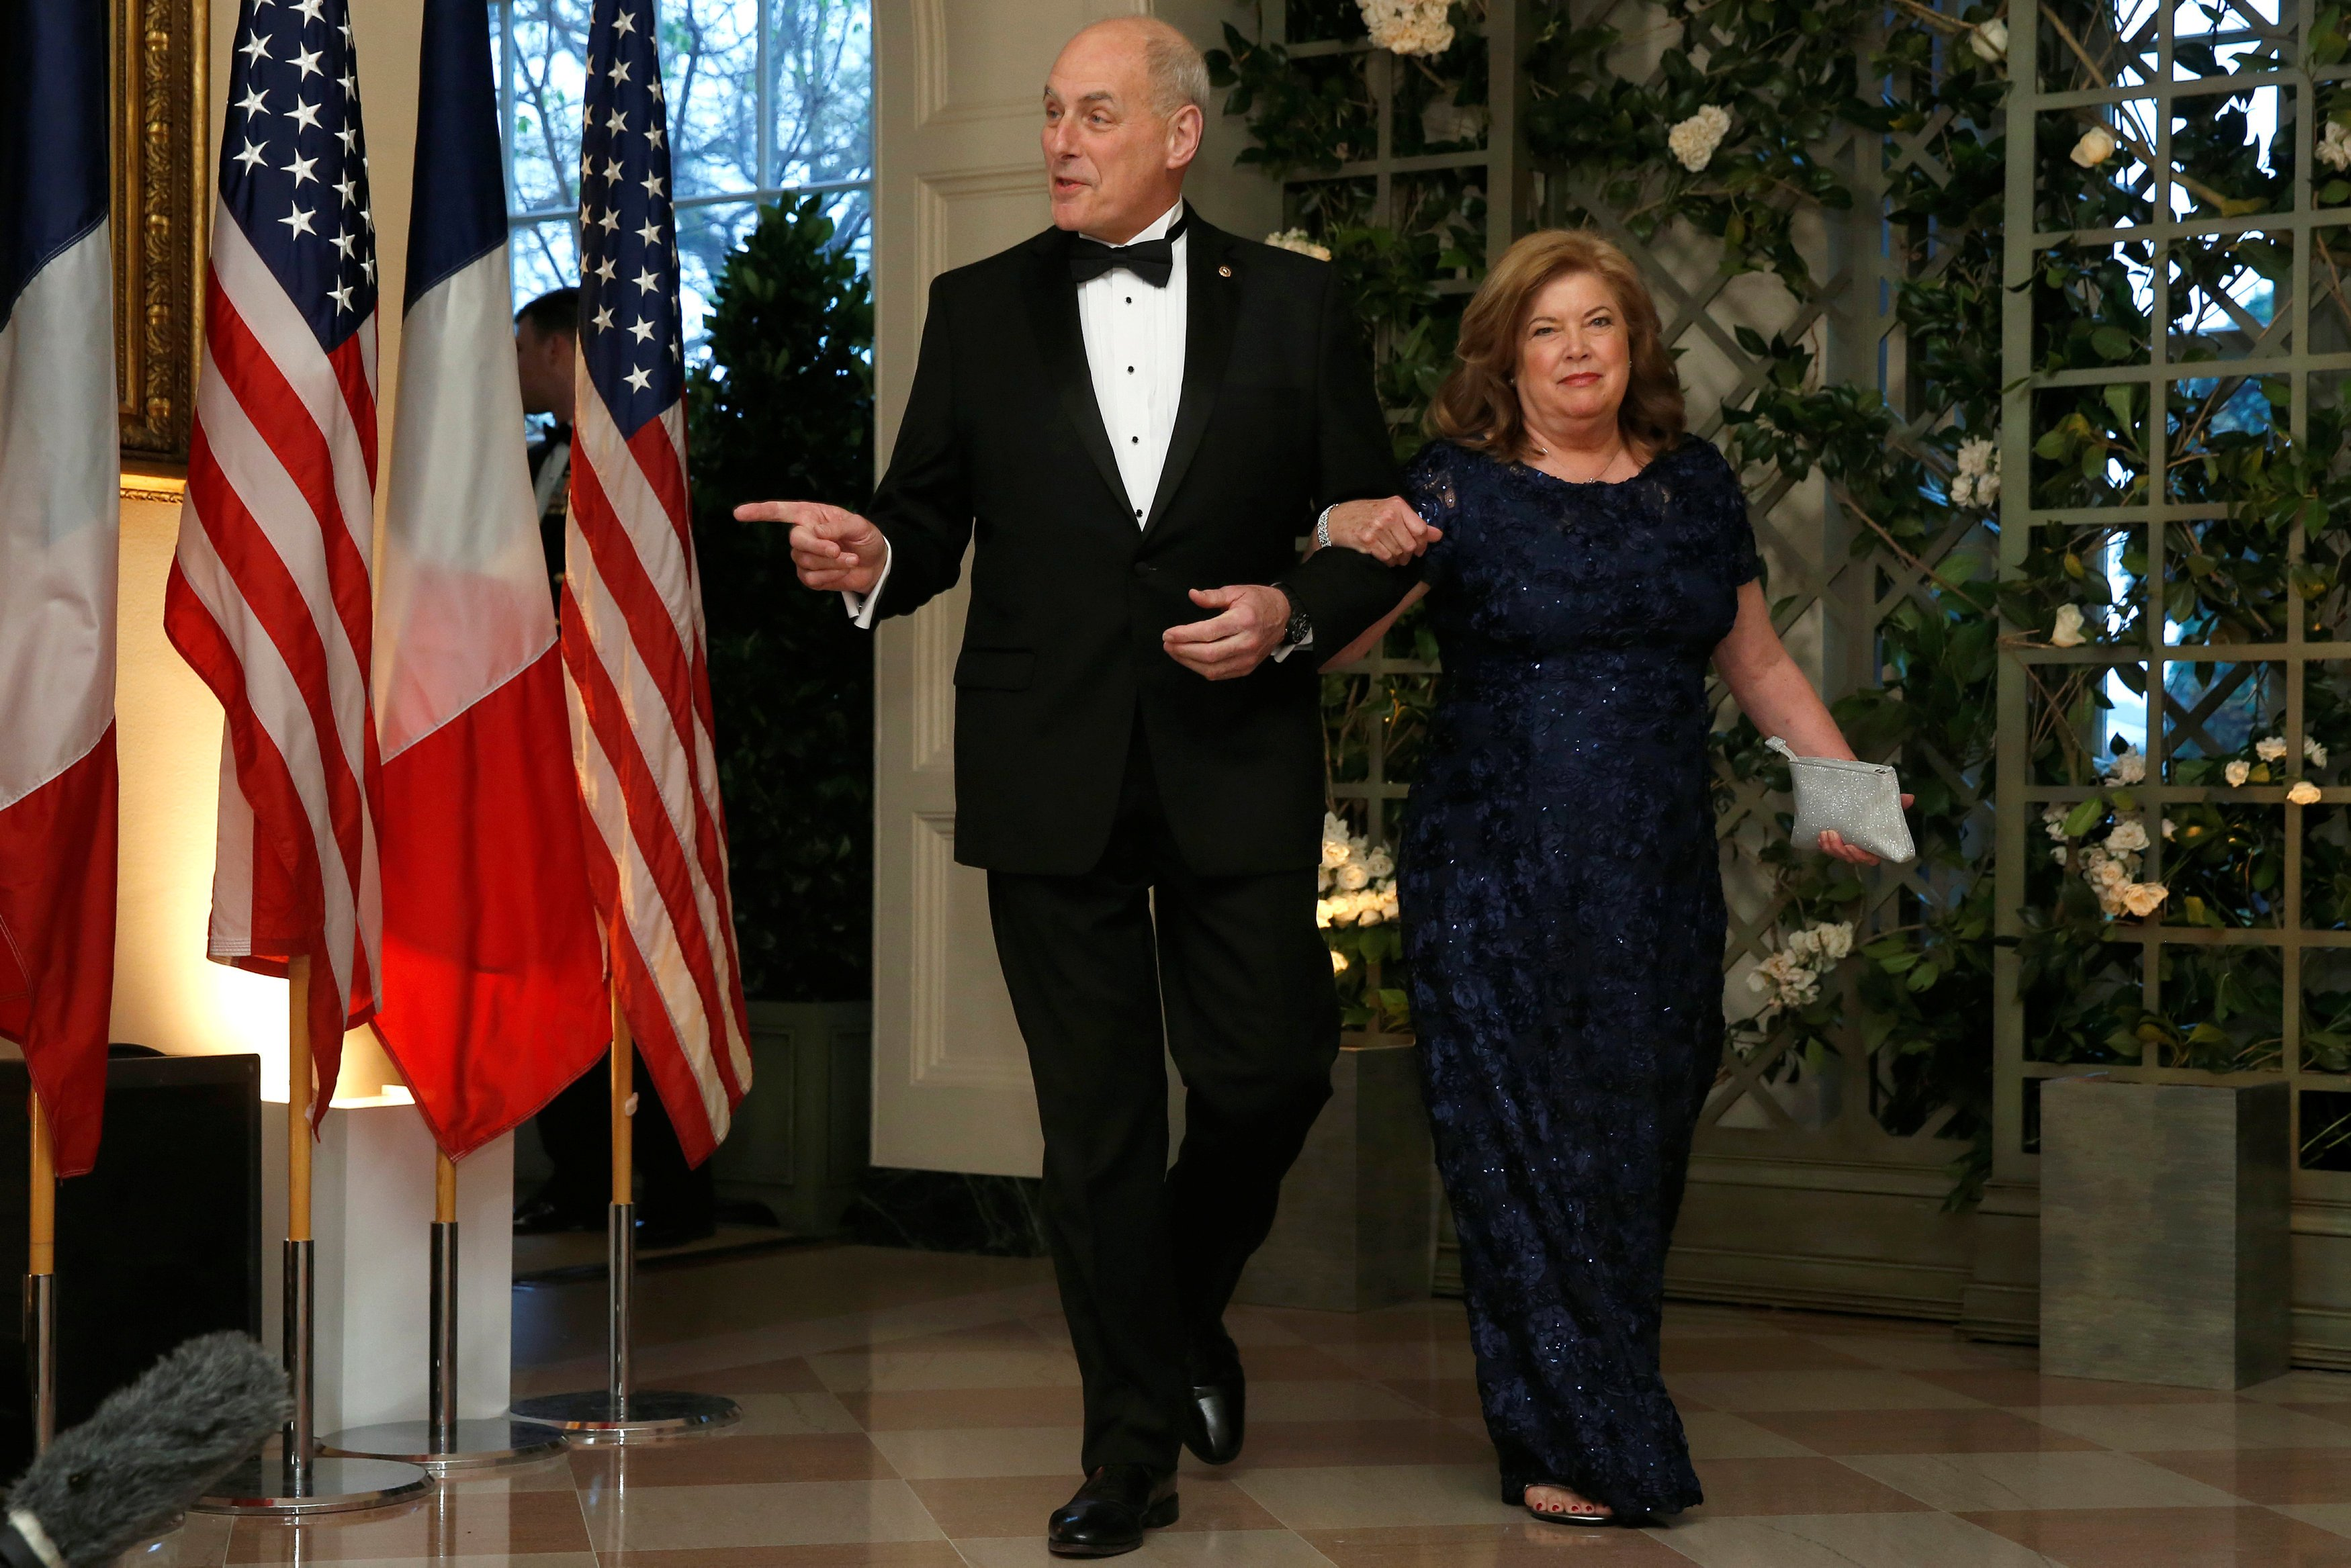 White House Chief of Staff John Kelly and his wife Karen Hernest arrive for the State Dinner in honor of French President Emmanuel Macron at the White House in Washington